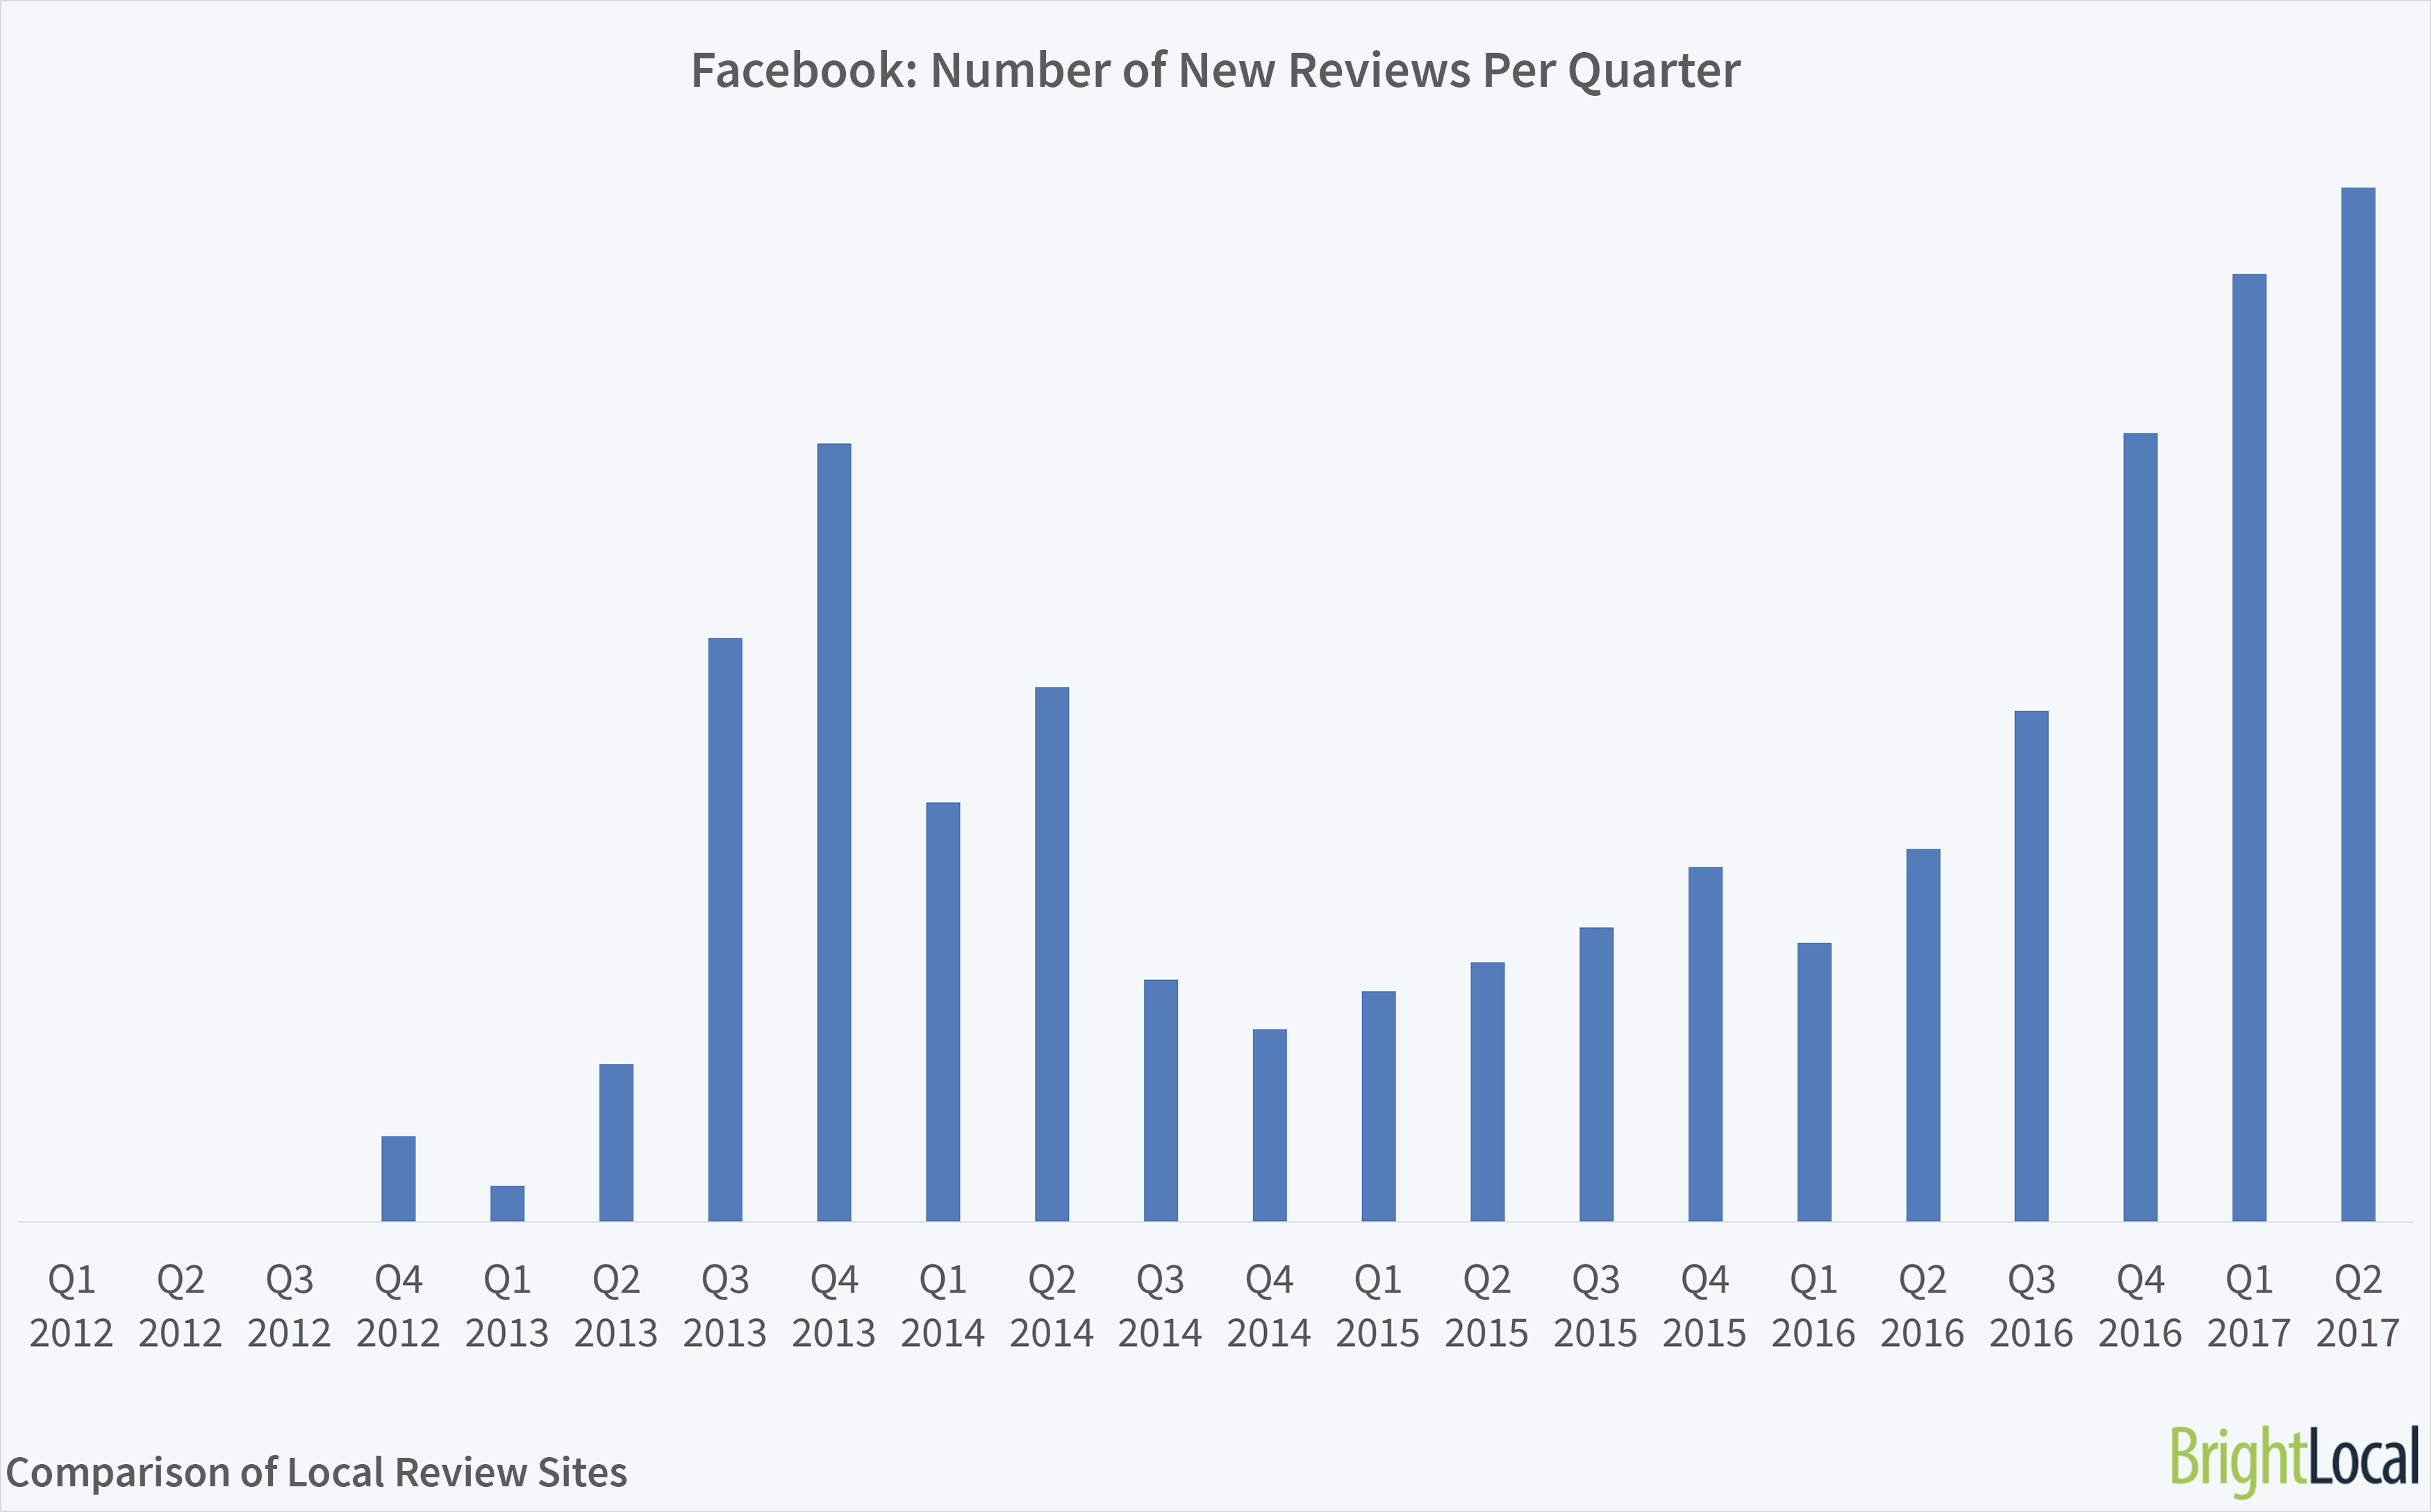 Facebook Reviews Growth